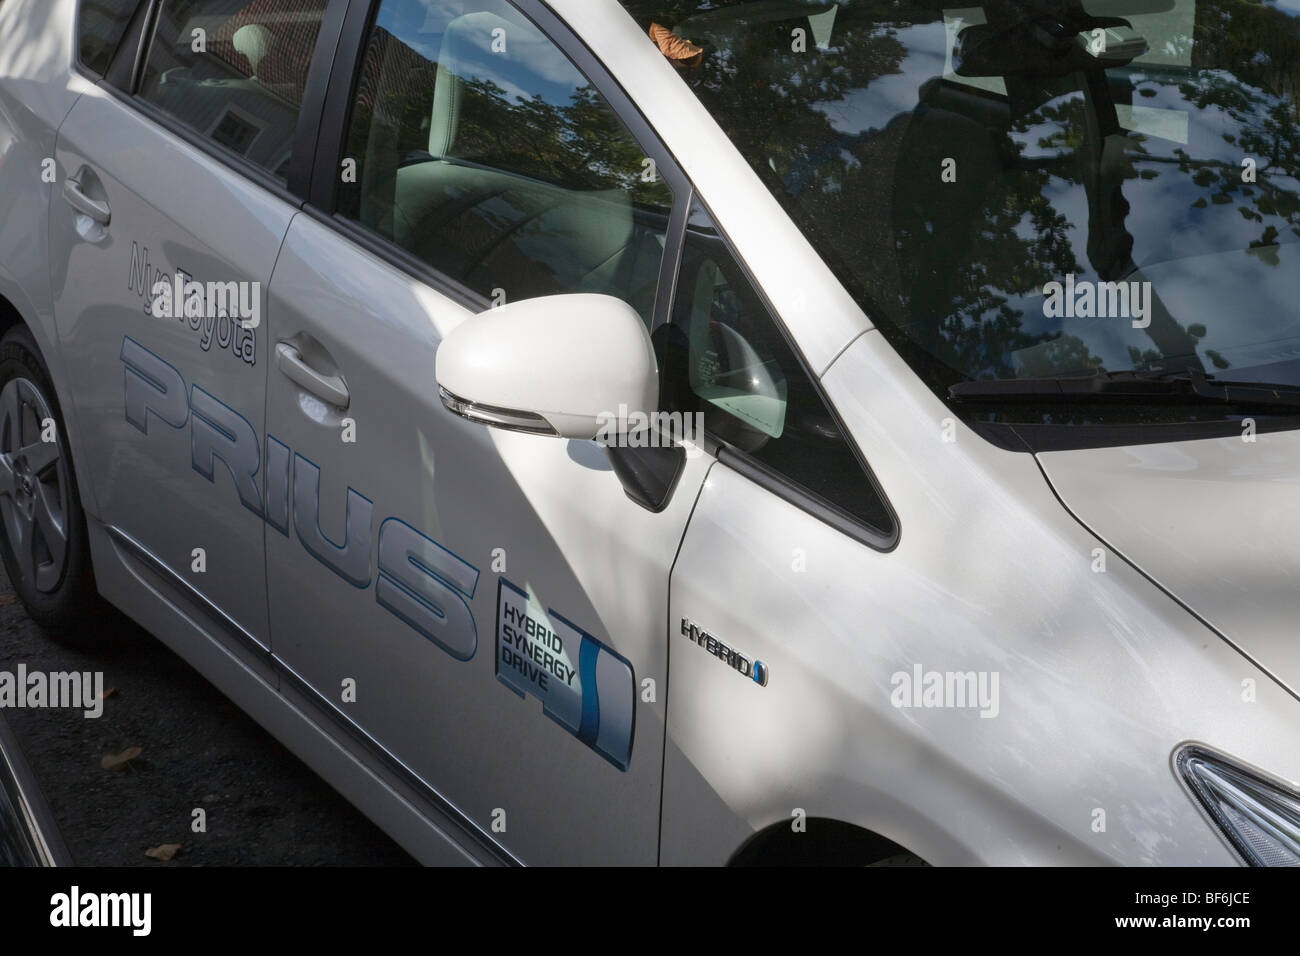 car toyota hybrid car - Stock Image